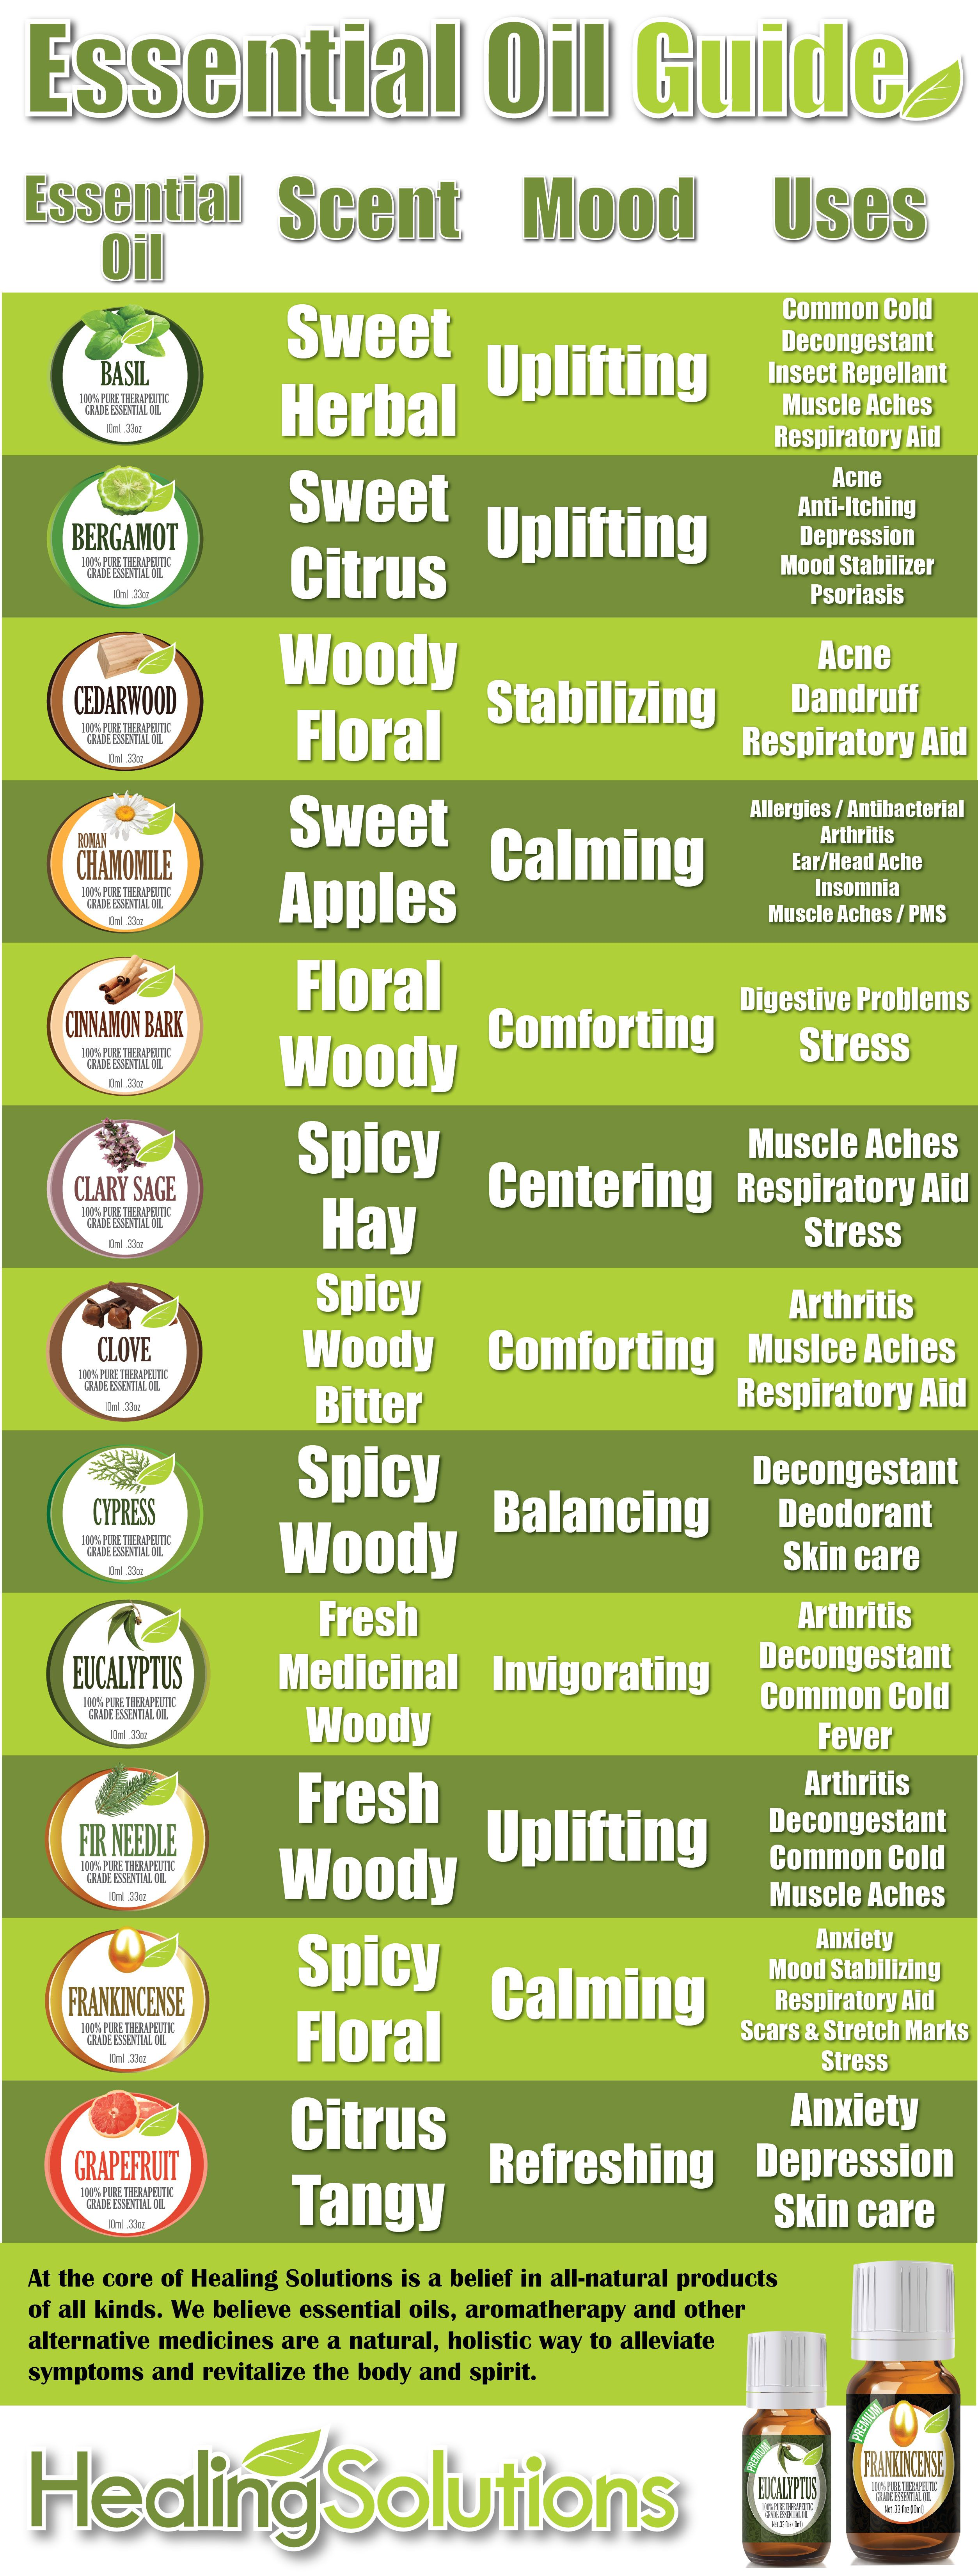 How do you use essential oils this is part one of the healing solutions two